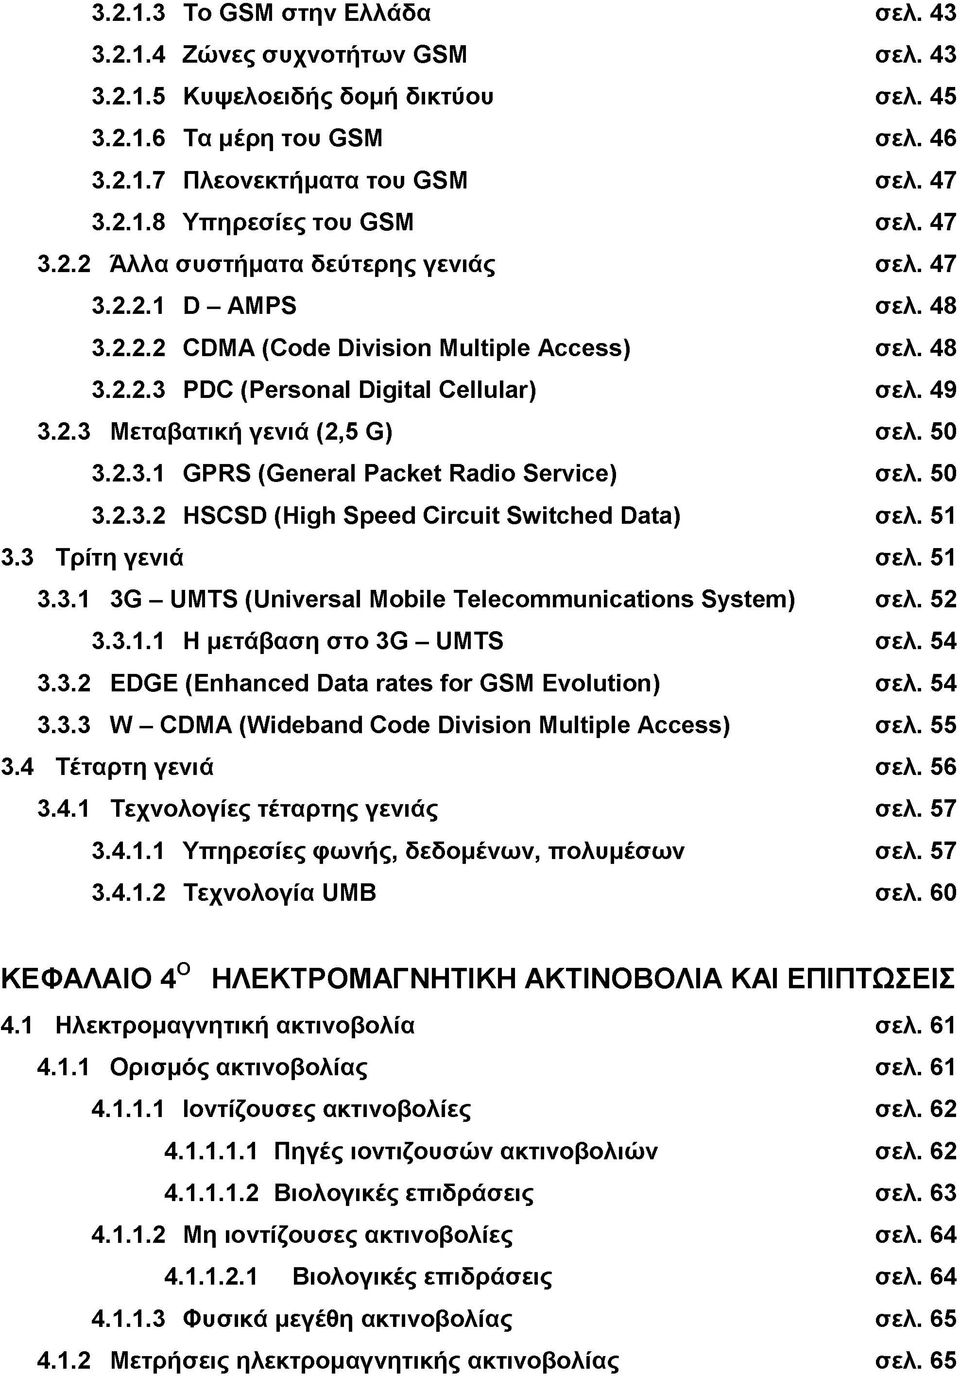 50 3.2.3.1 GPRS (General Packet Radio Service) σελ. 50 3.2.3.2 HSCSD (High Speed Circuit Switched Data) σελ. 51 3.3 Τρίτη γενιά σελ. 51 3.3.1 3G - UMTS (Universal Mobile Telecommunications System) σελ.